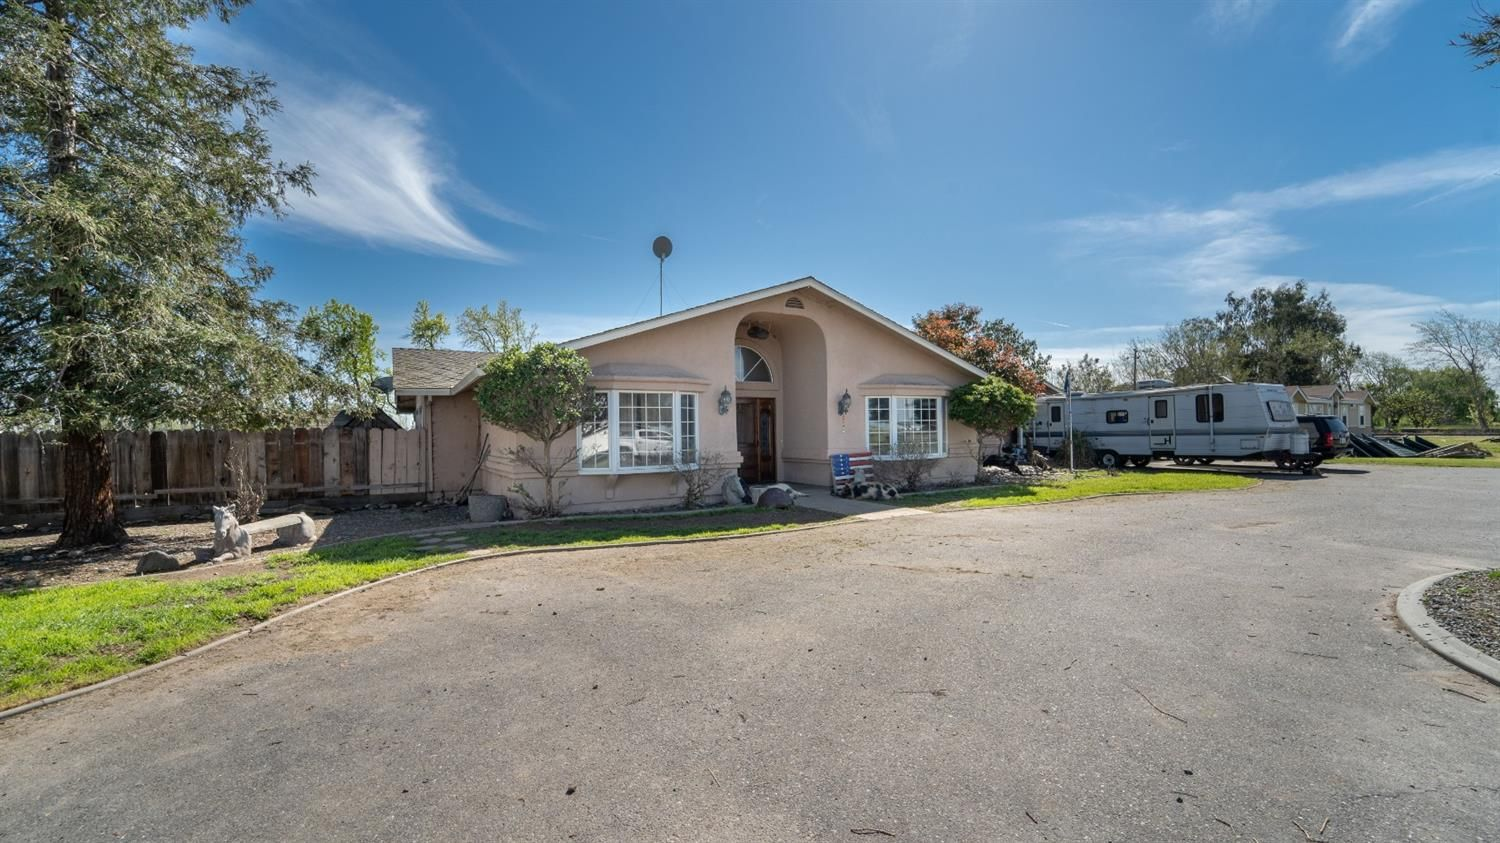 25302 Dodds Rd Escalon Ca 95320 4 Bed 2 Bath Single Family